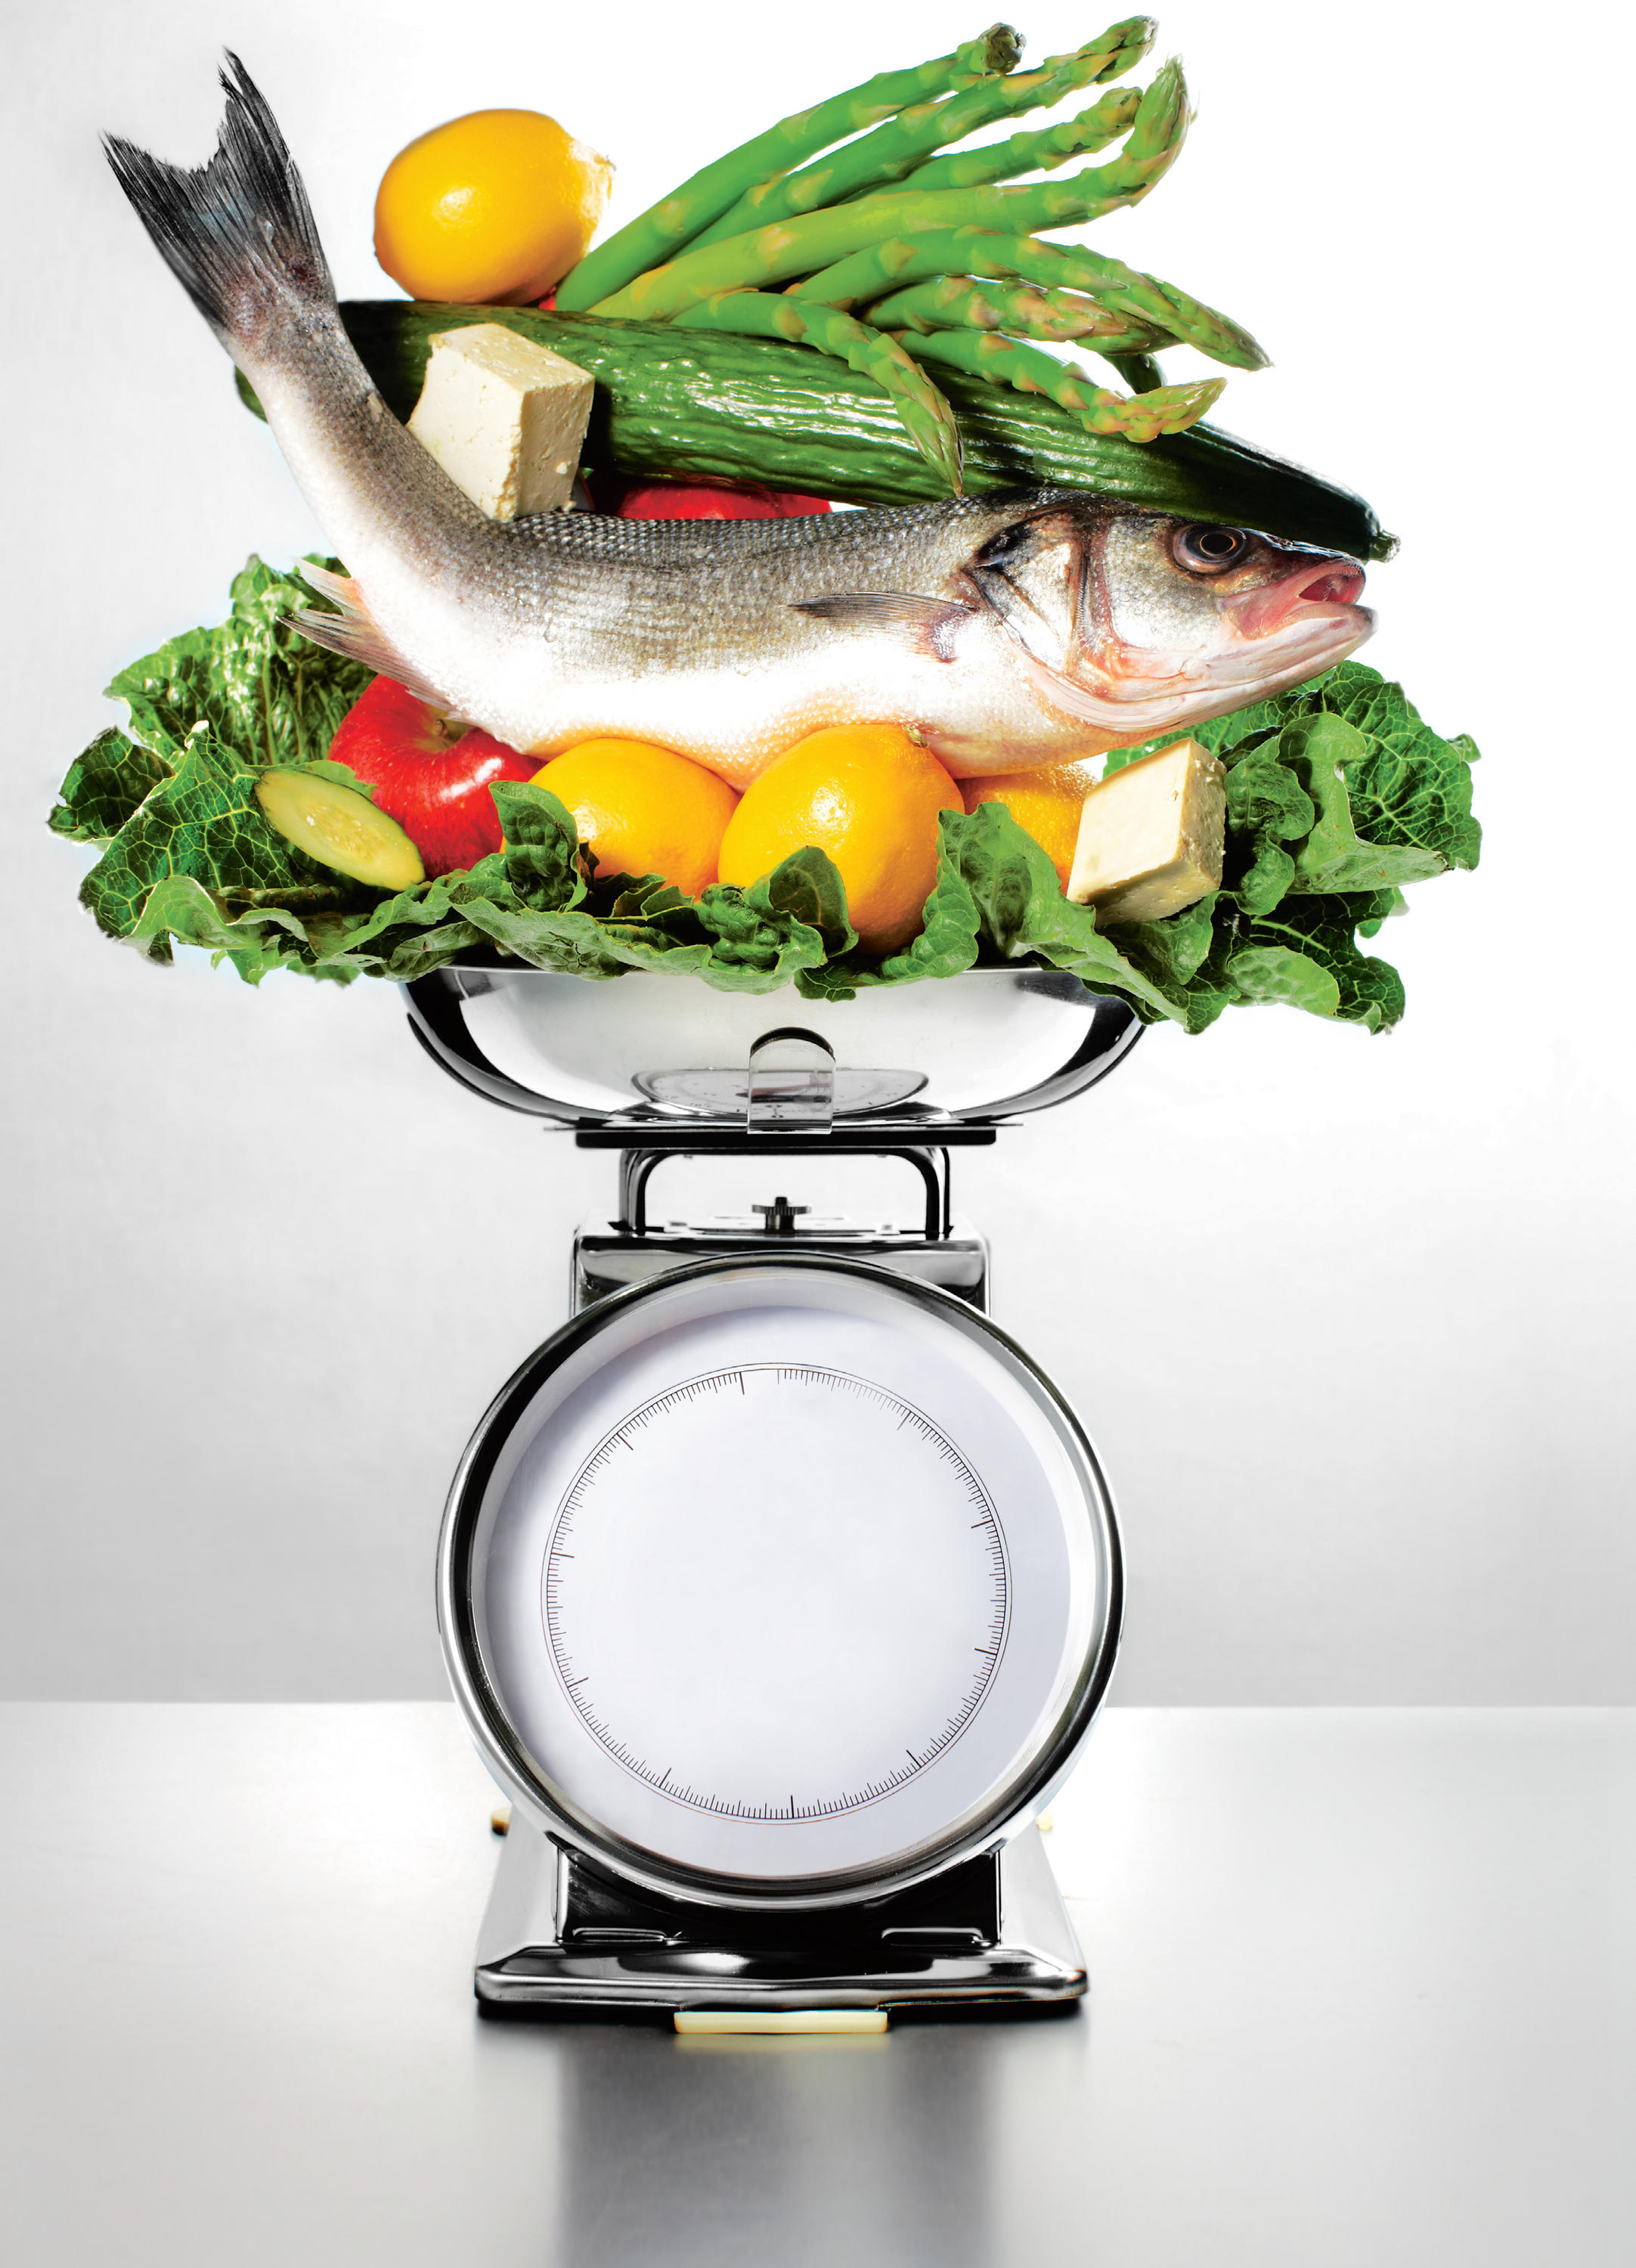 The Dukan Diet: Like Atkins, only healthier